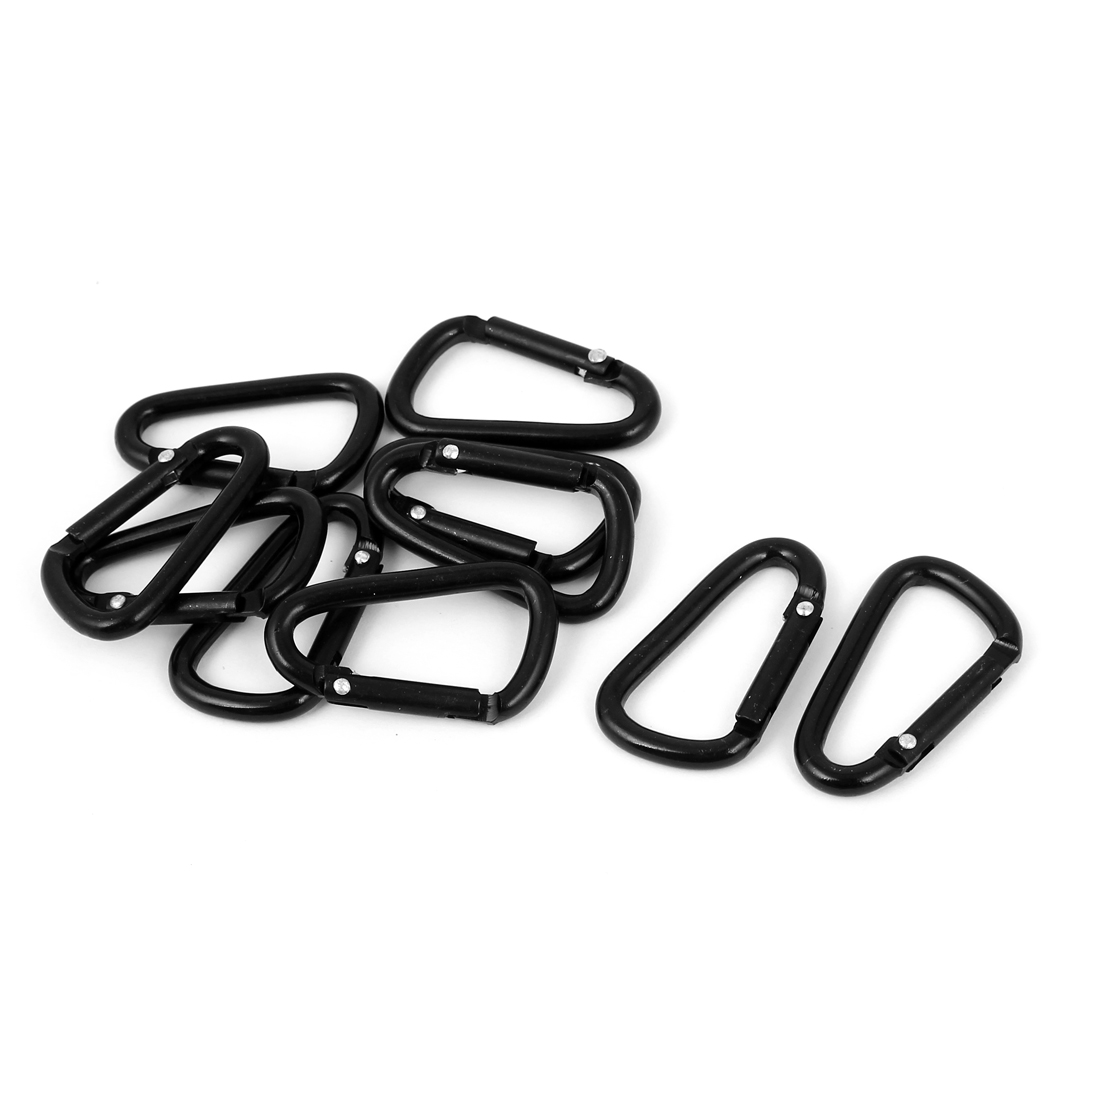 10 Pcs Black D Shaped Aluminum Alloy Fishing Traveling Carabiner Hook Keychain